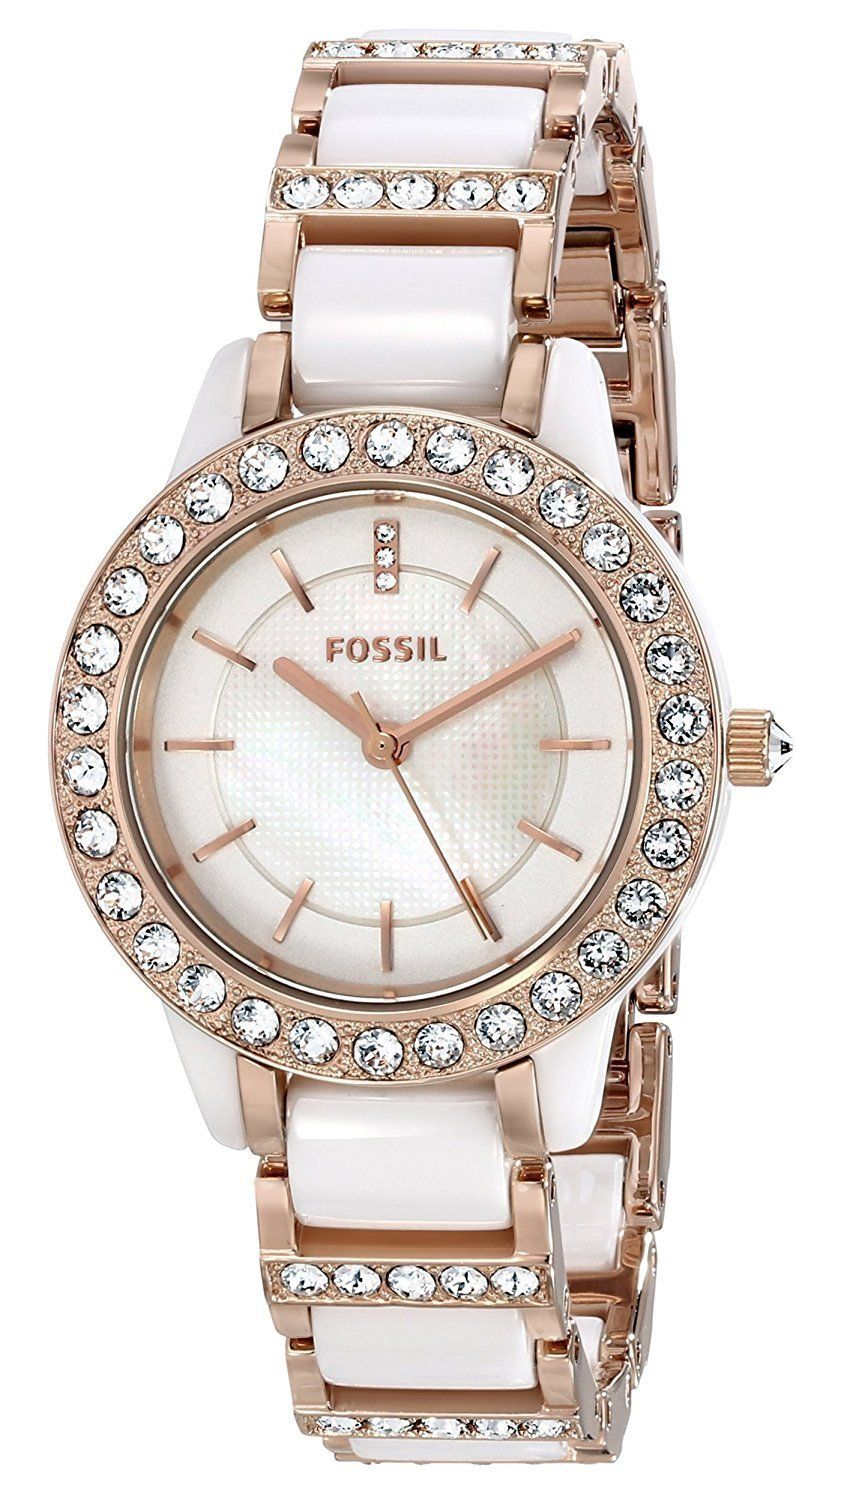 0552fe8c2ea9 Fossil Women s CE1041 Jesse White Ceramic Rose Gold Tone Watch ...